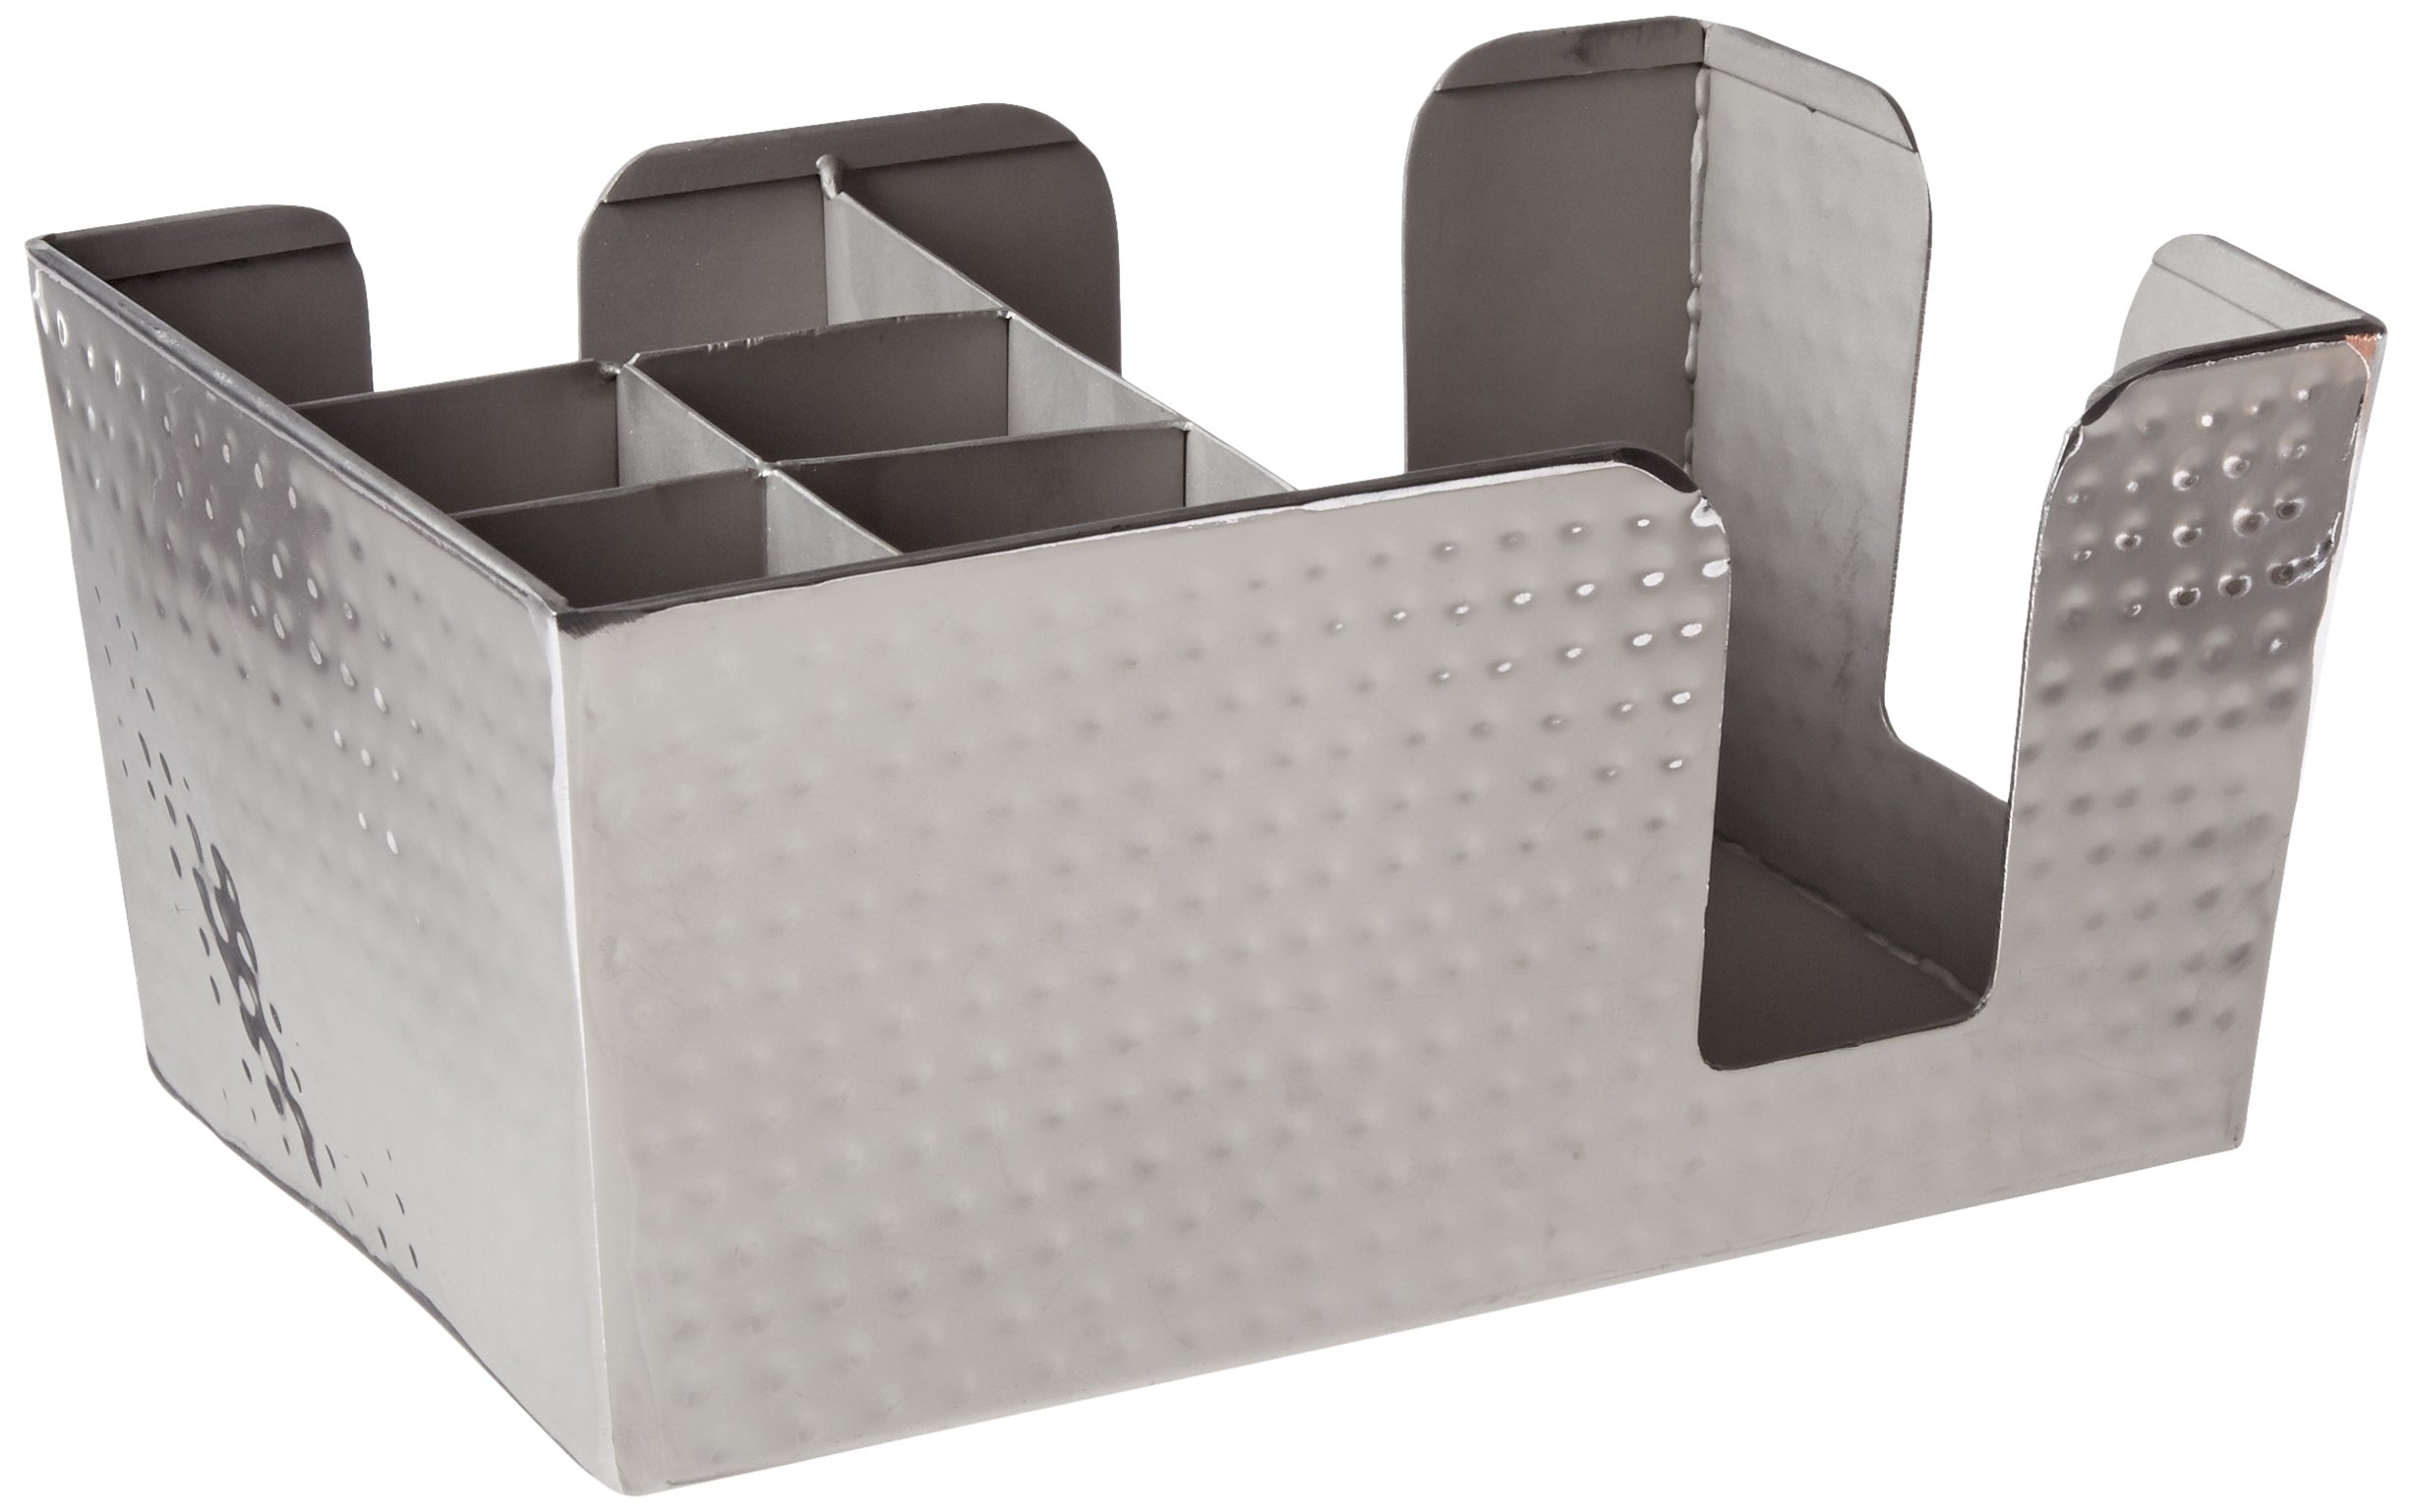 American Metalcraft HMBAR8 Hammered Stainless Steel Bar Caddy with 6 Compartments, Silver by American Metalcraft (Image #1)